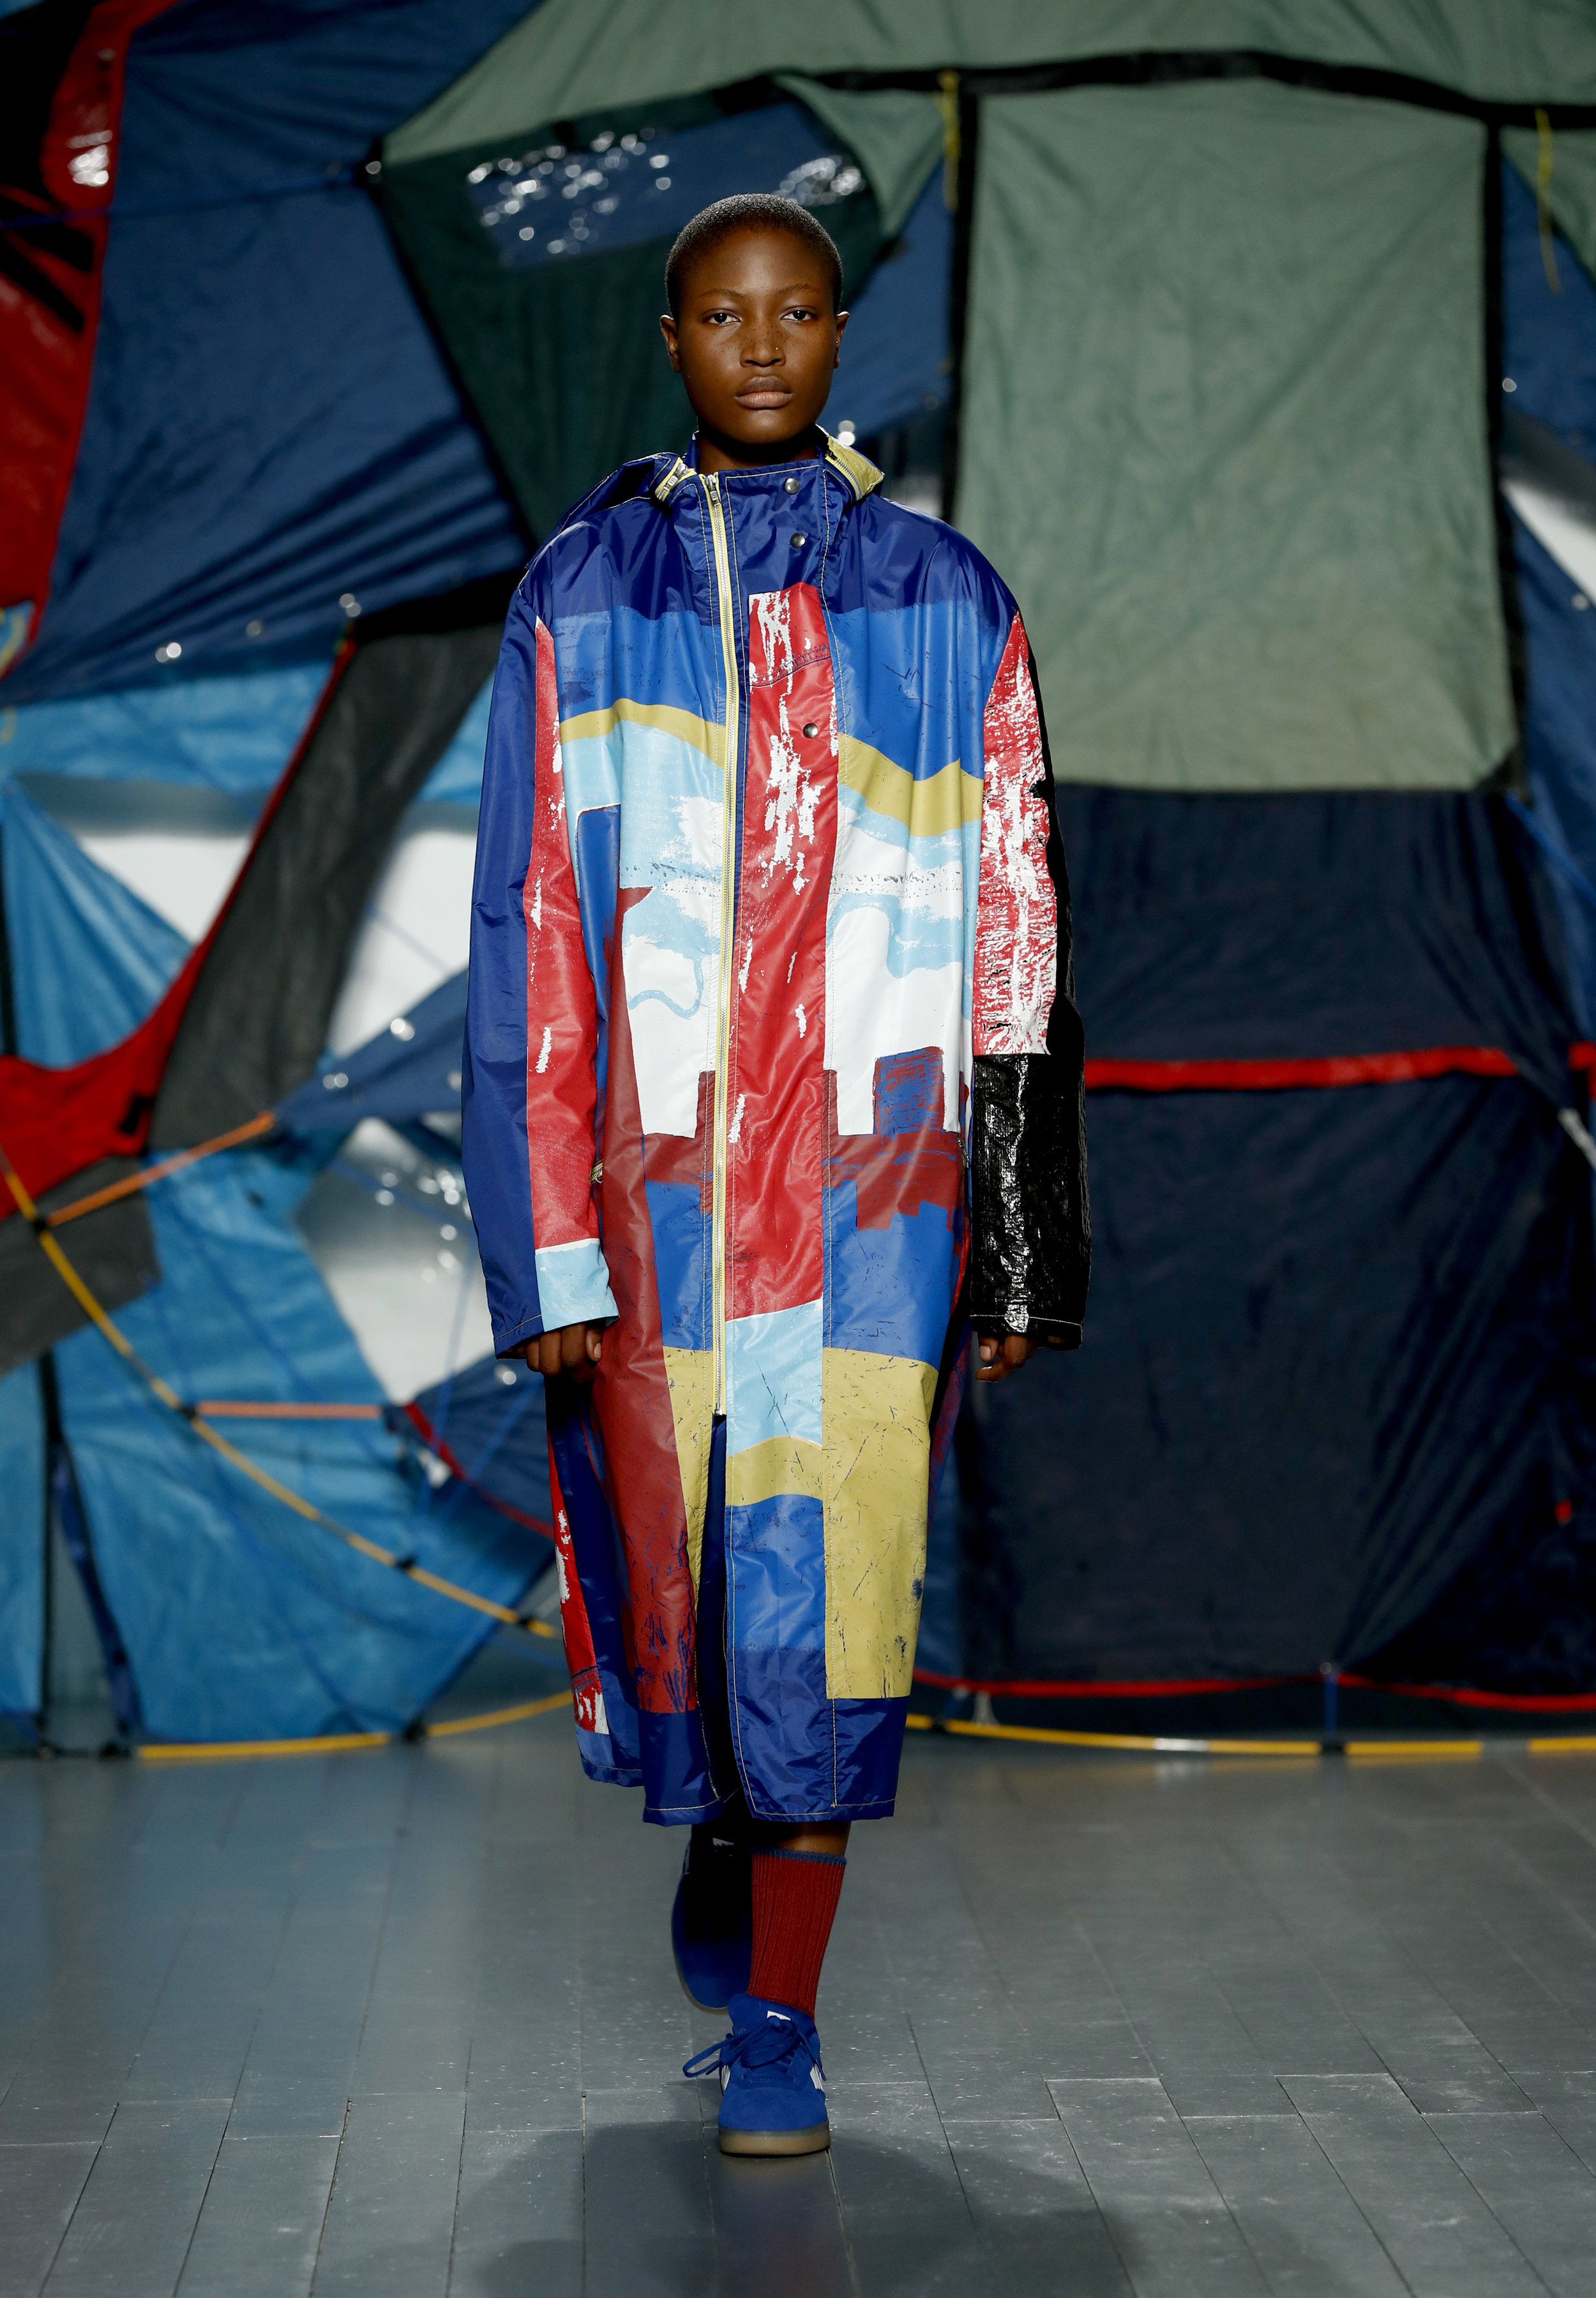 LONDON, ENGLAND - FEBRUARY 19:  A model walks the runway at the Bethany Williams show during London Fashion Week February 2019 at the BFC Show Space on February 19, 2019 in London, England. (Photo by John Phillips/BFC/Getty Images)